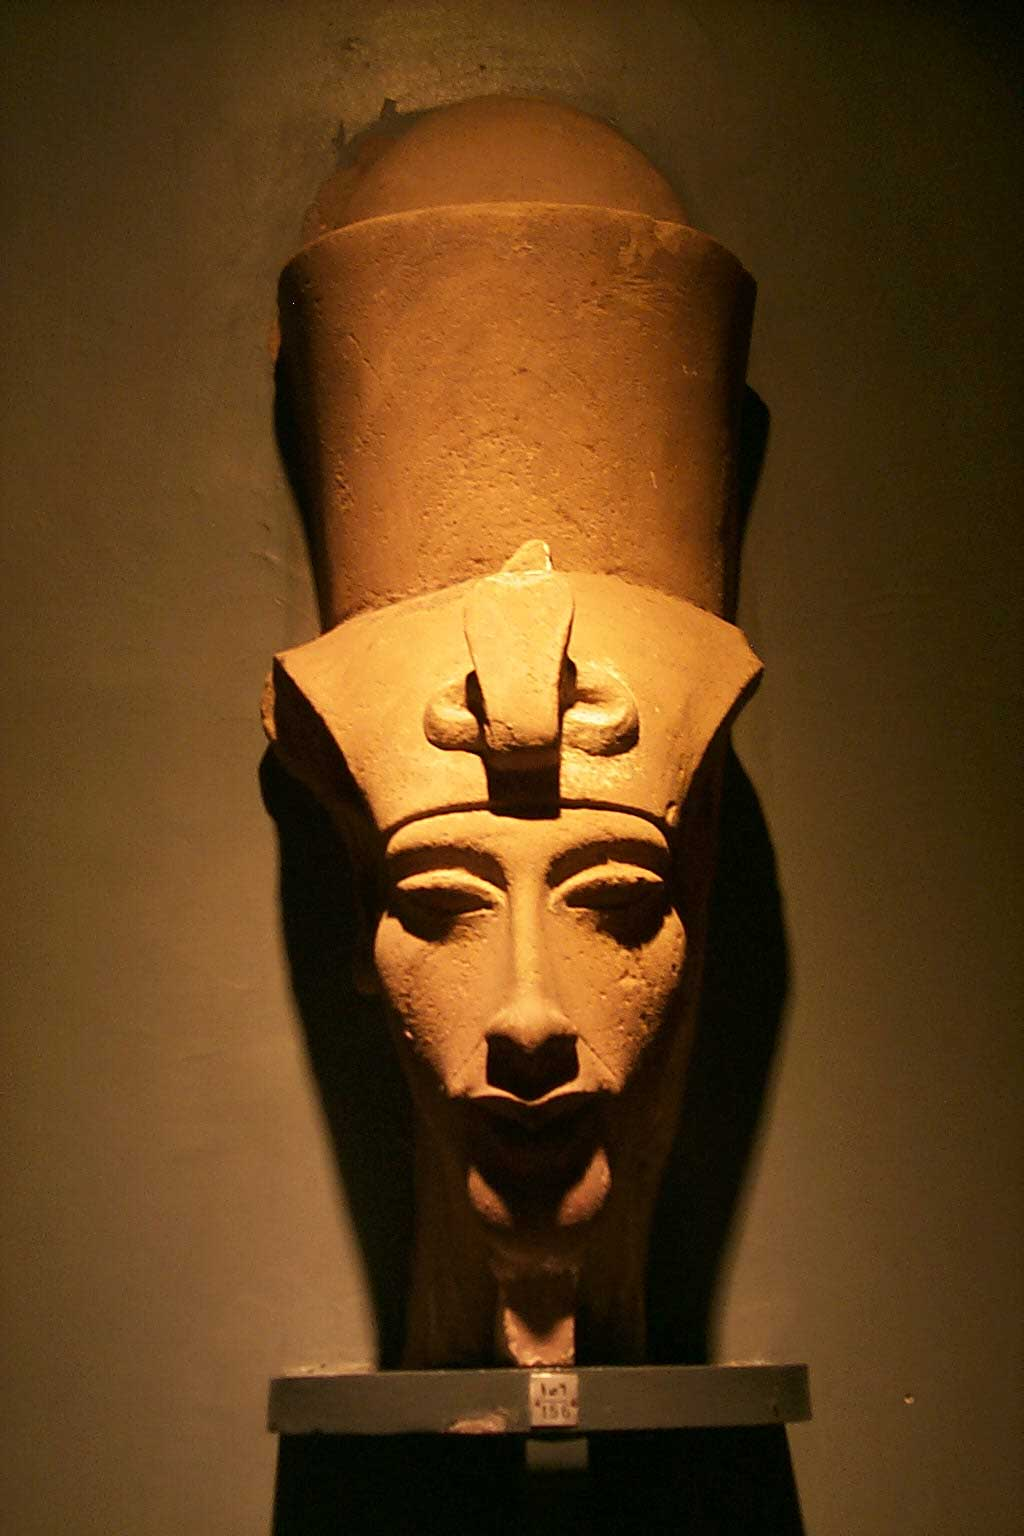 The picture is of a stone bust of Pharaoh Akhenaten. Here, the king is depicted with a slender face and extended facial features. Atop his head is the double crown of Egypt.